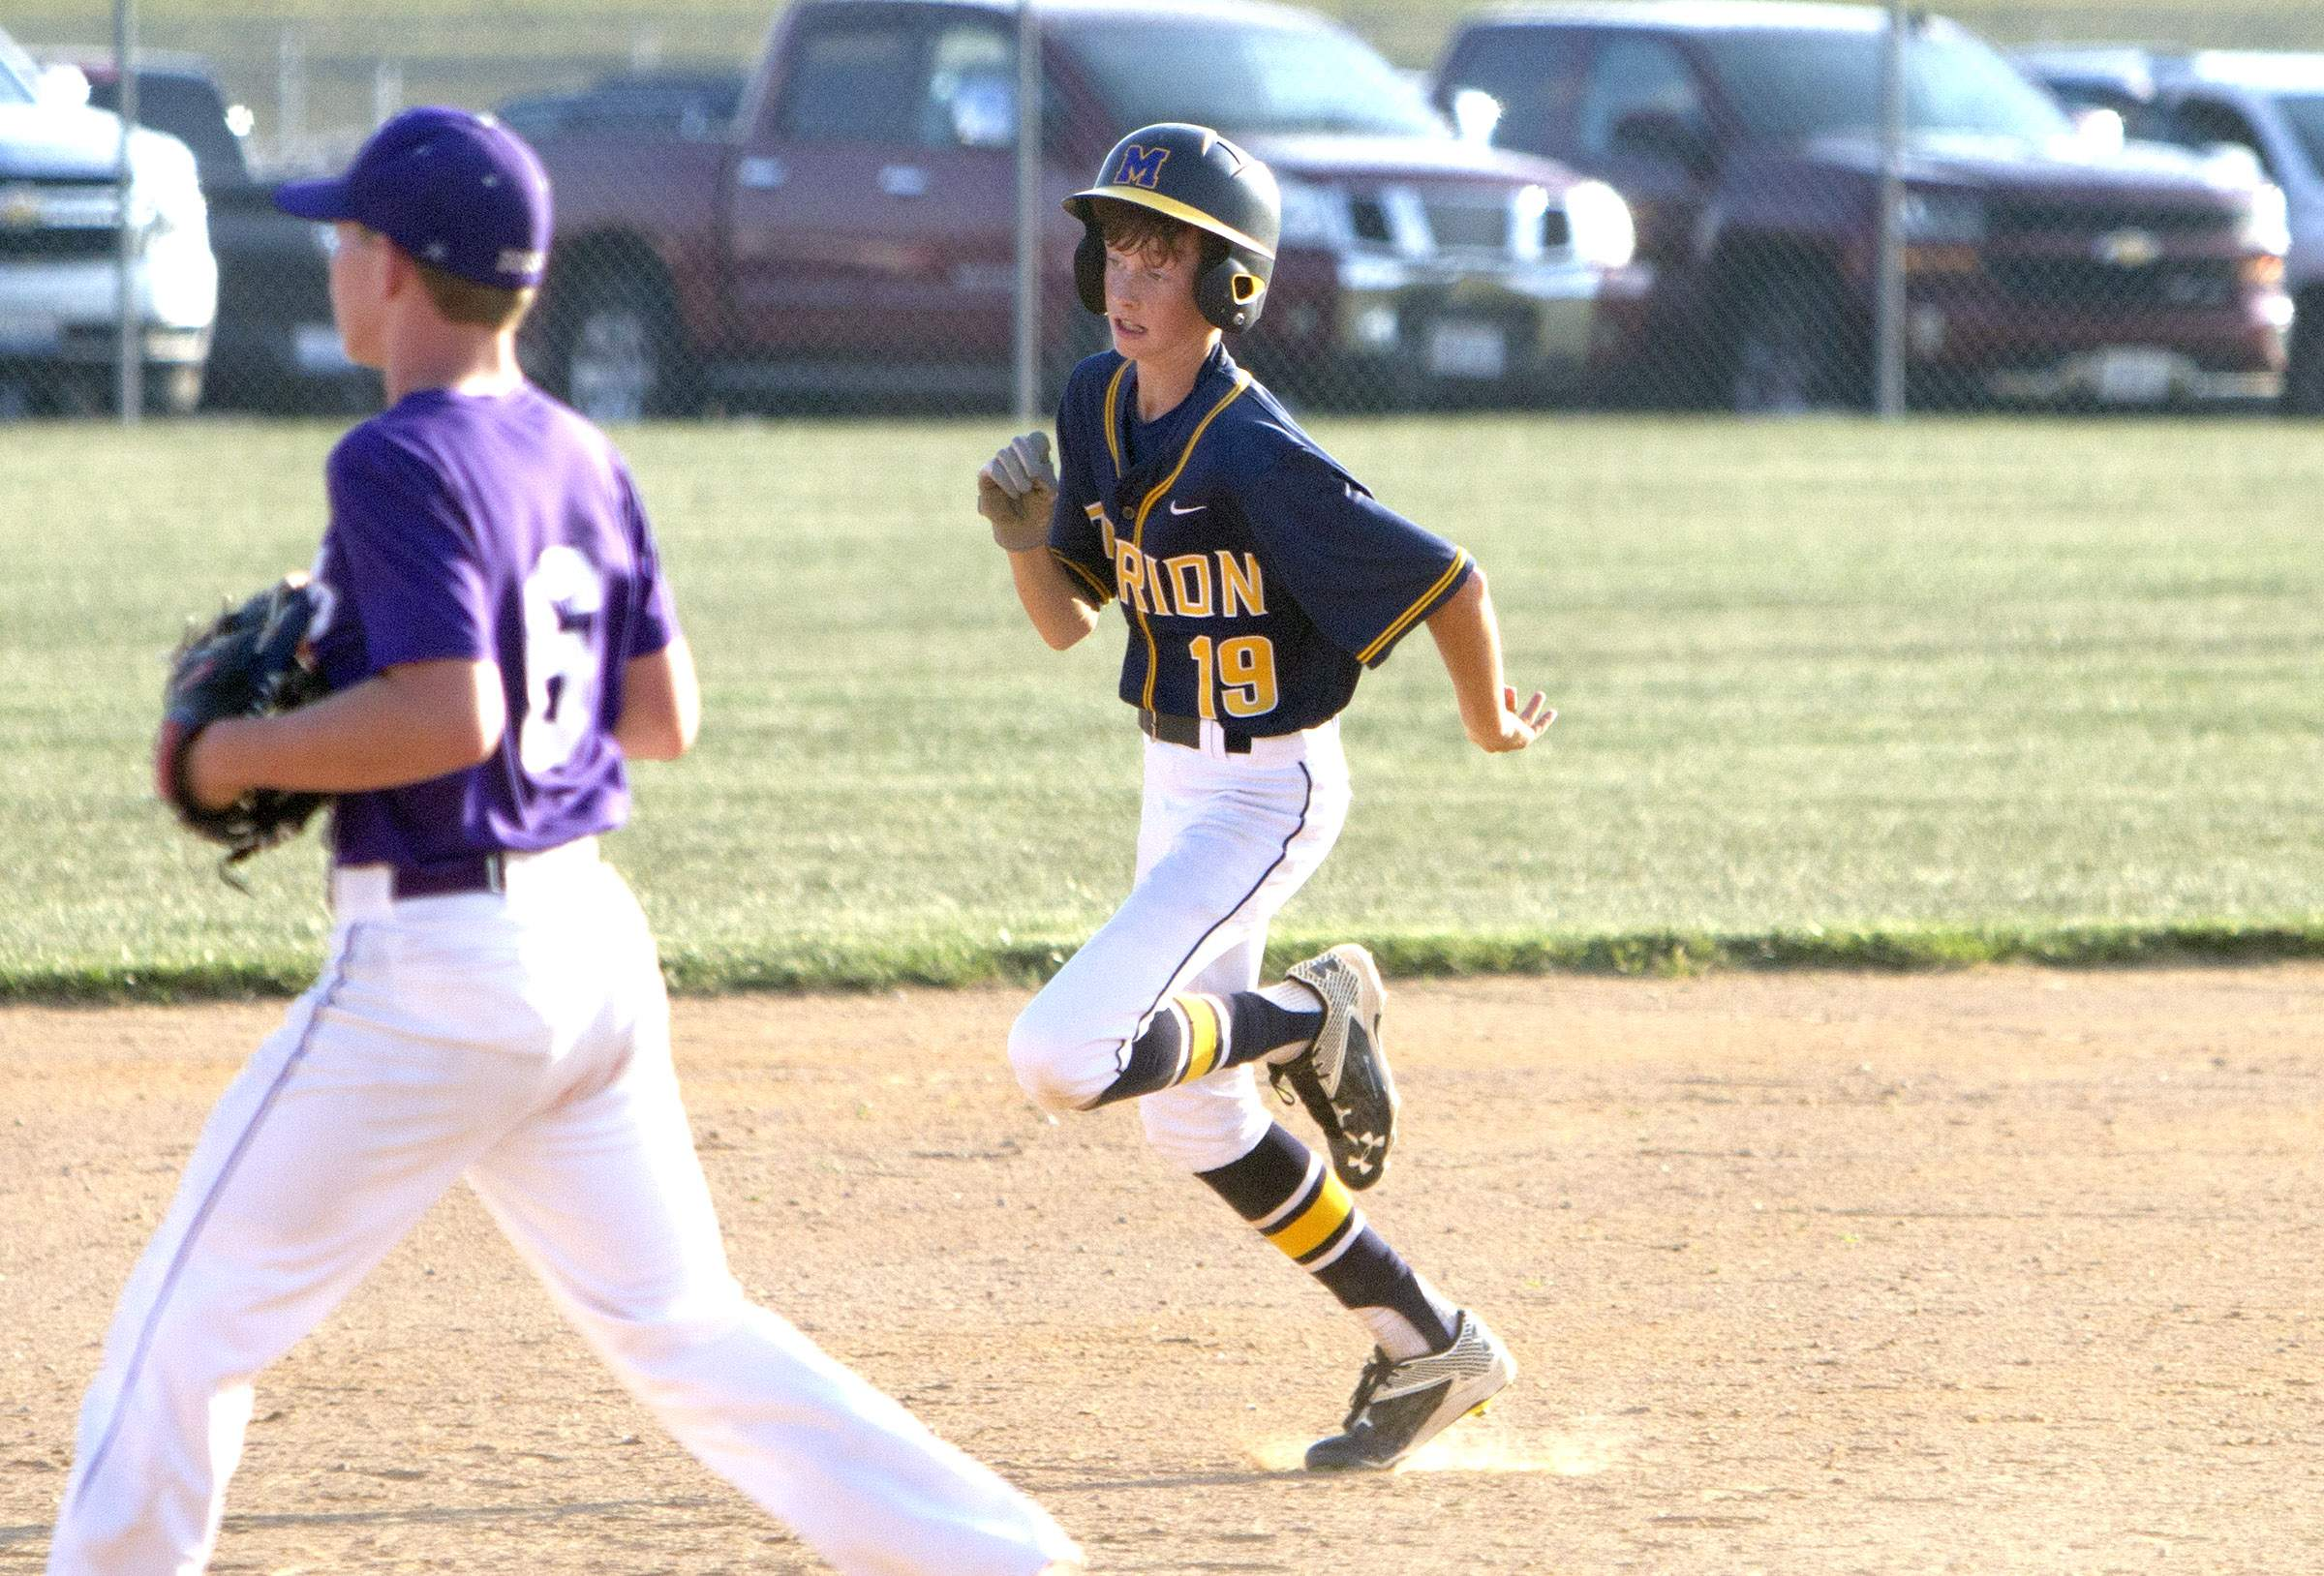 Devyn Wright runs to third base in the fifth inning.